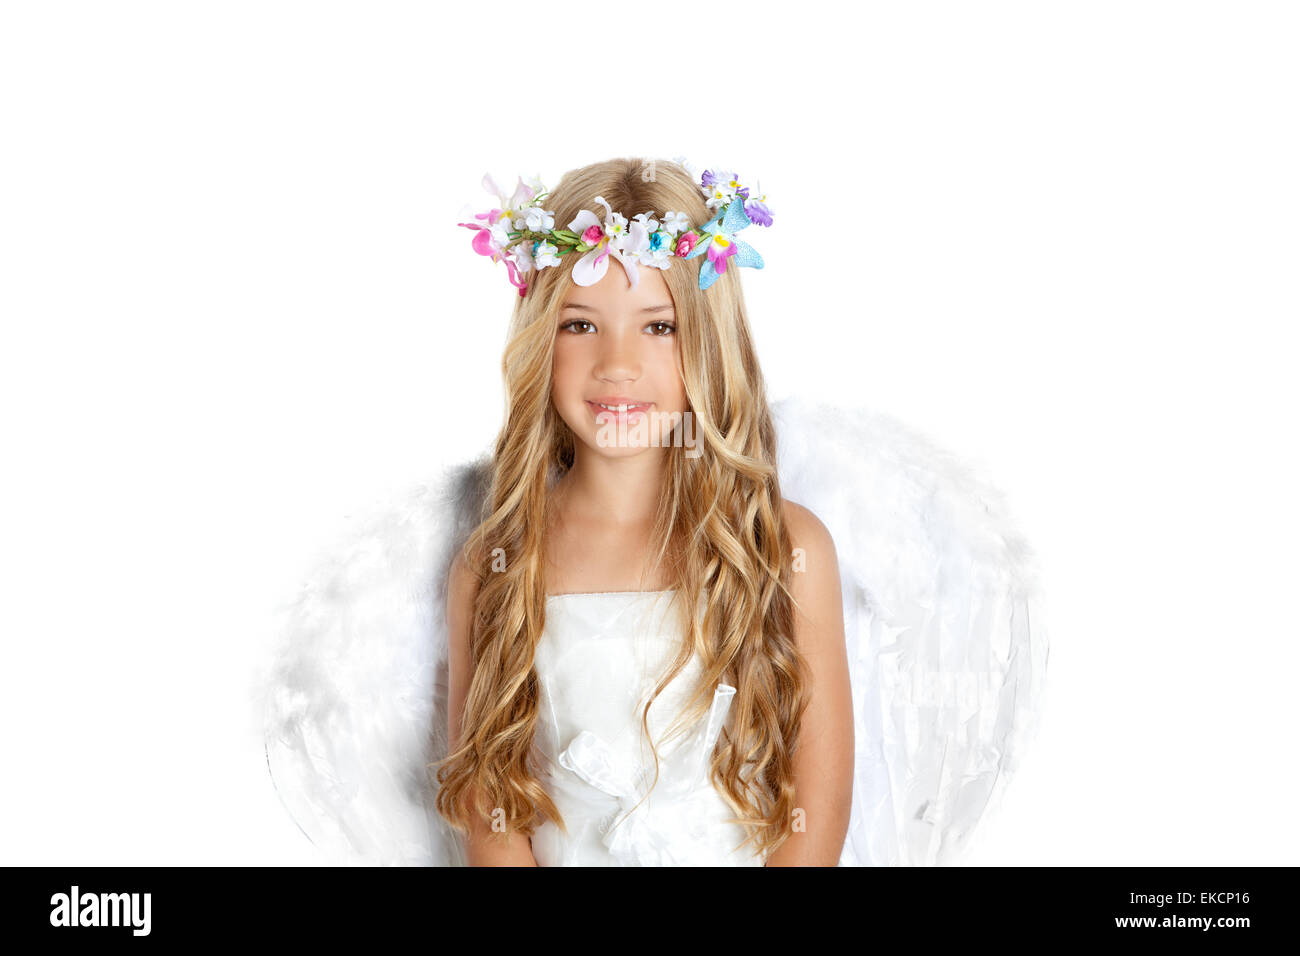 Angel little girl with wings and children flowers crown stock photo angel little girl with wings and children flowers crown izmirmasajfo